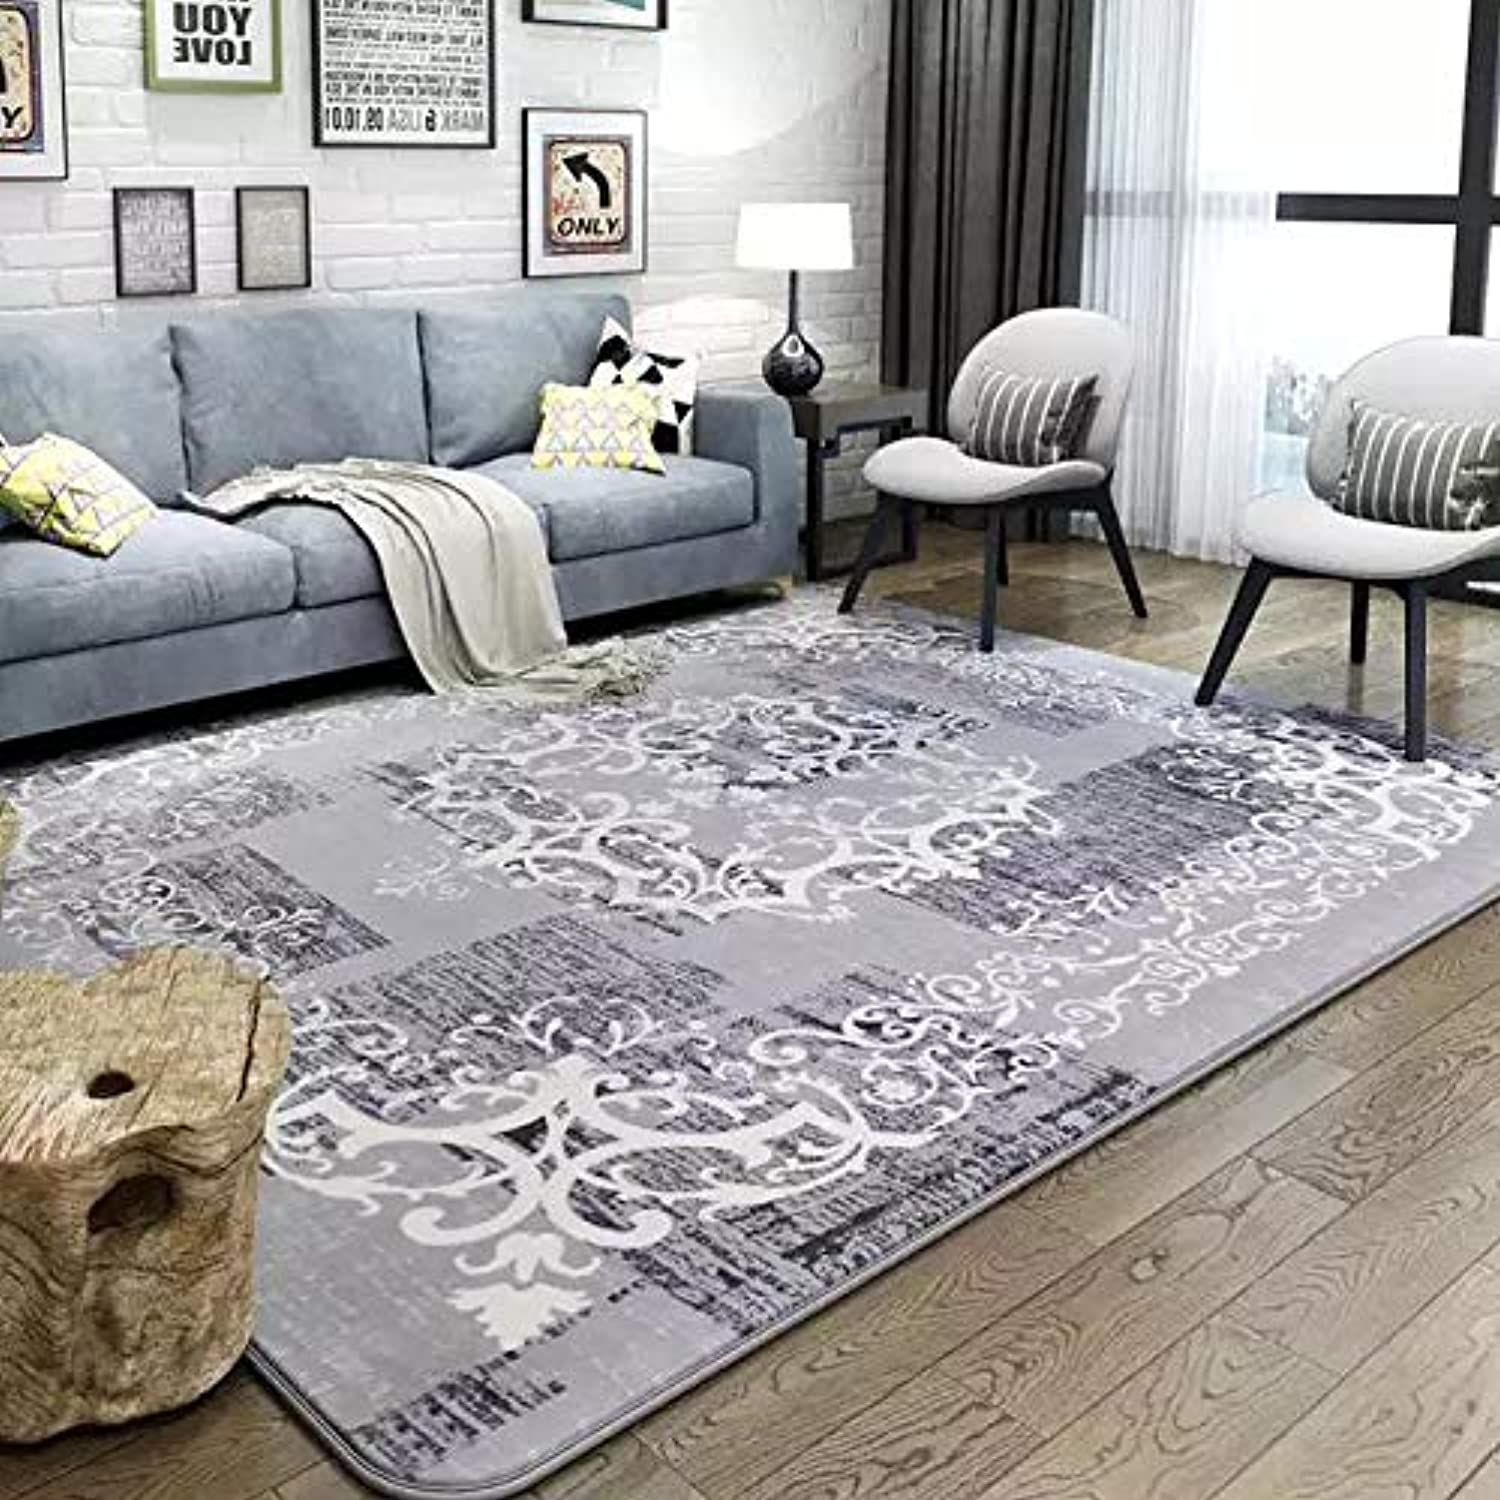 Blanket Area Rug Collection Scroll Abstract Design Area Rug Rugs Slip Skid Resistant Backing (Grey, 7 x 8 (6'7  x 7'10 ))